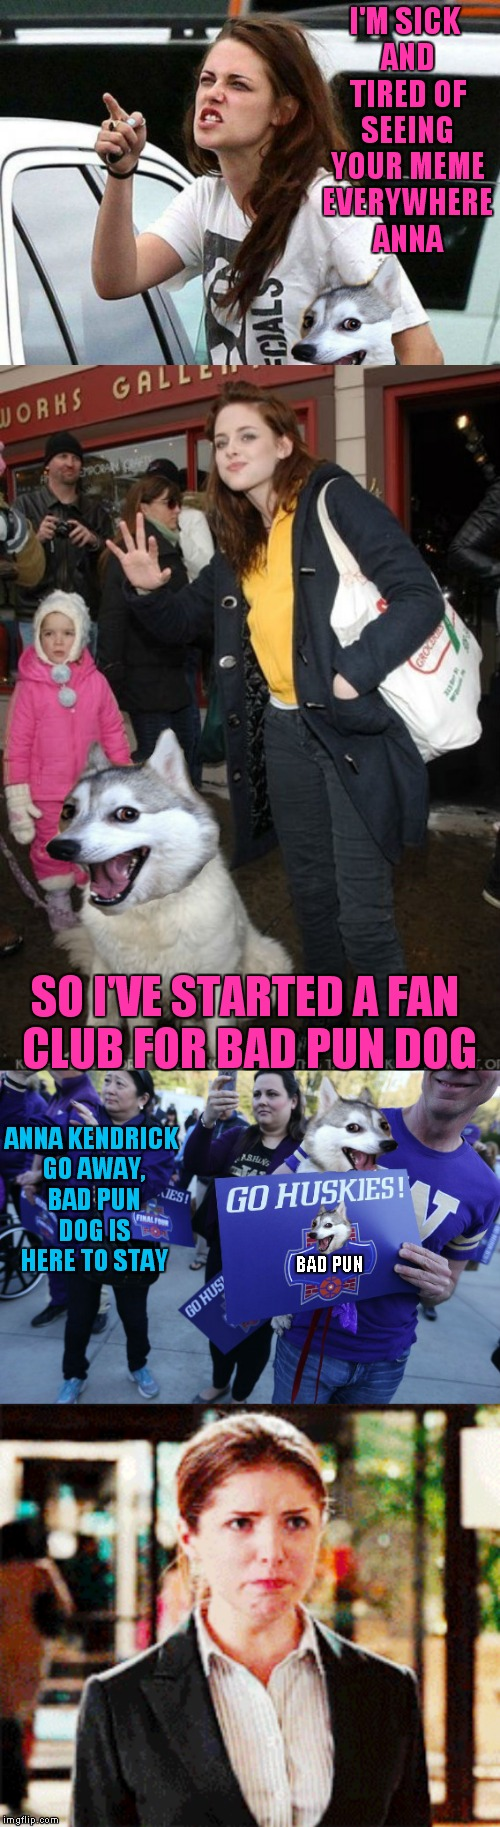 Uh-Oh looks like somebody is jealous of Anna's fame! | I'M SICK AND TIRED OF SEEING YOUR MEME EVERYWHERE ANNA BAD PUN SO I'VE STARTED A FAN CLUB FOR BAD PUN DOG ANNA KENDRICK GO AWAY, BAD PUN DOG | image tagged in kristen stewart,bad pun dog,meme war,bad pun anna kendrick | made w/ Imgflip meme maker